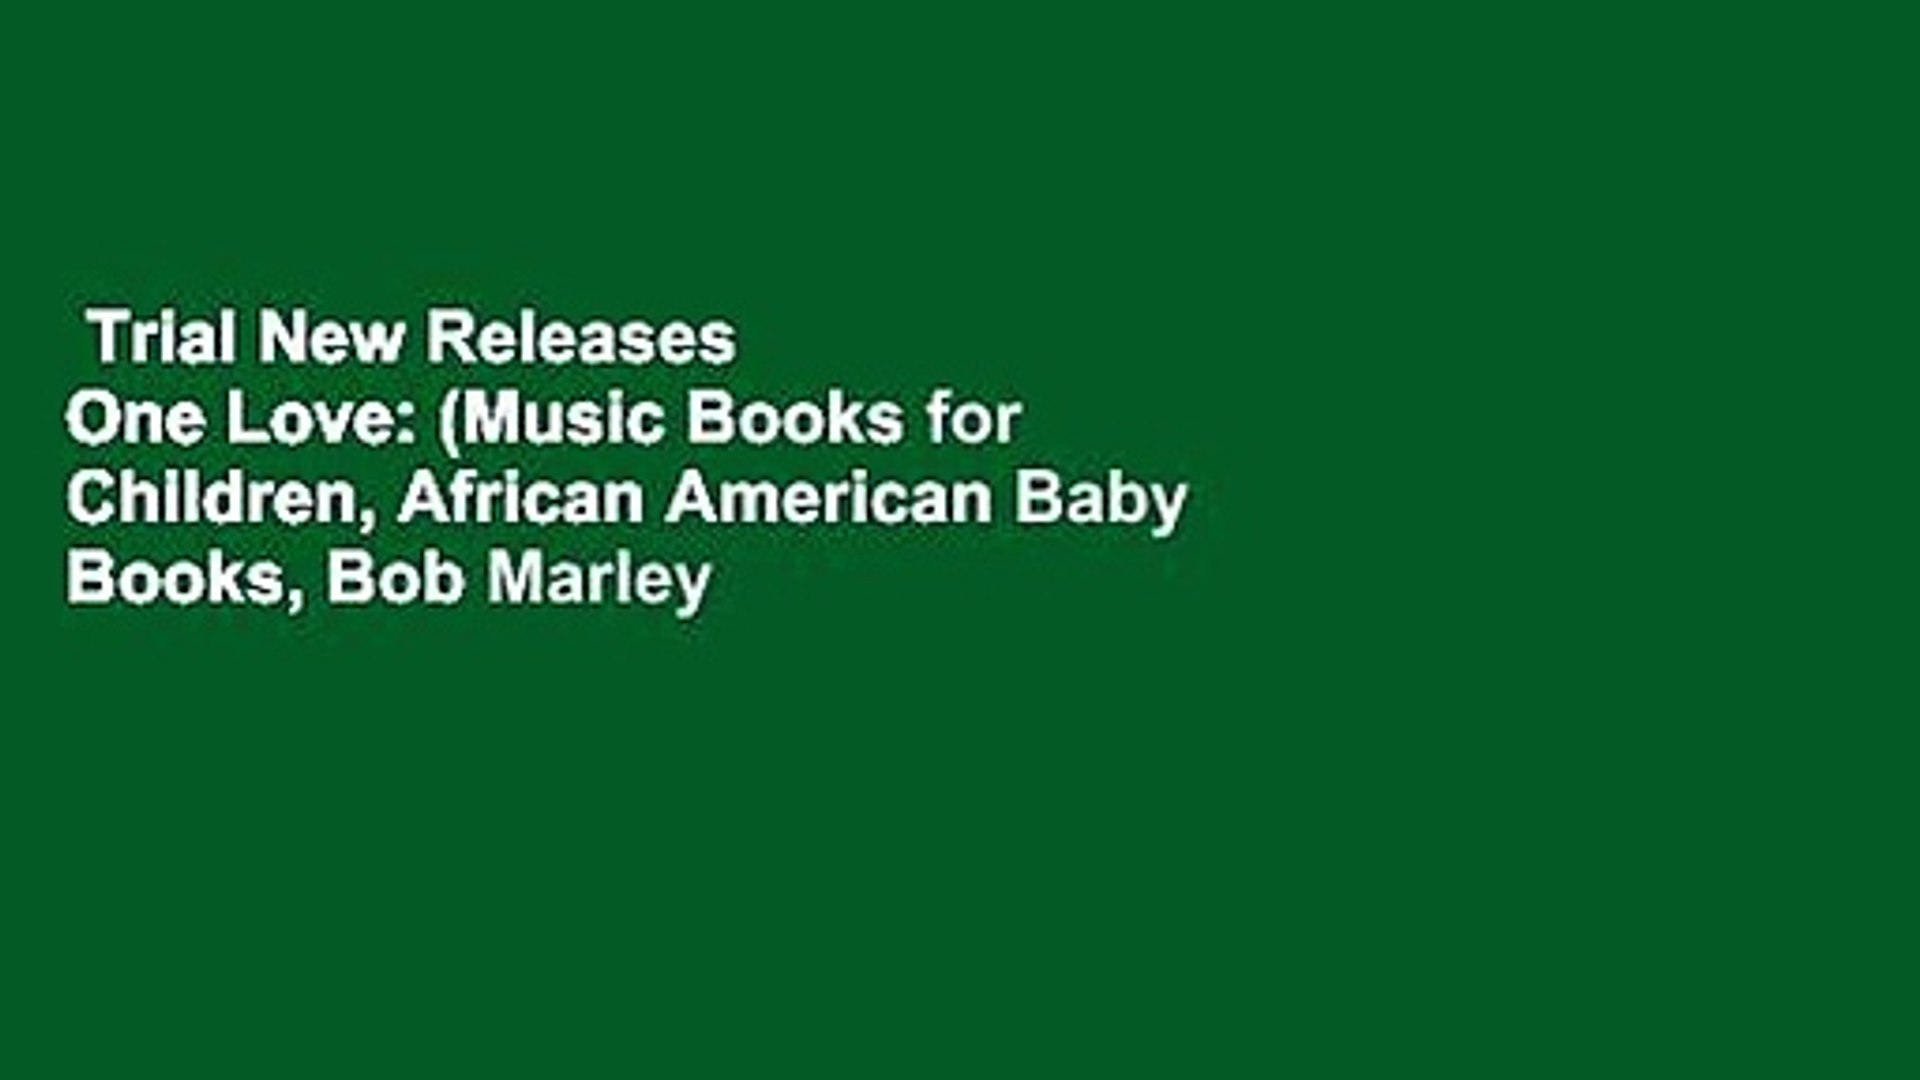 Trial New Releases One Love Music Books For Children African American Baby Books Bob Marley